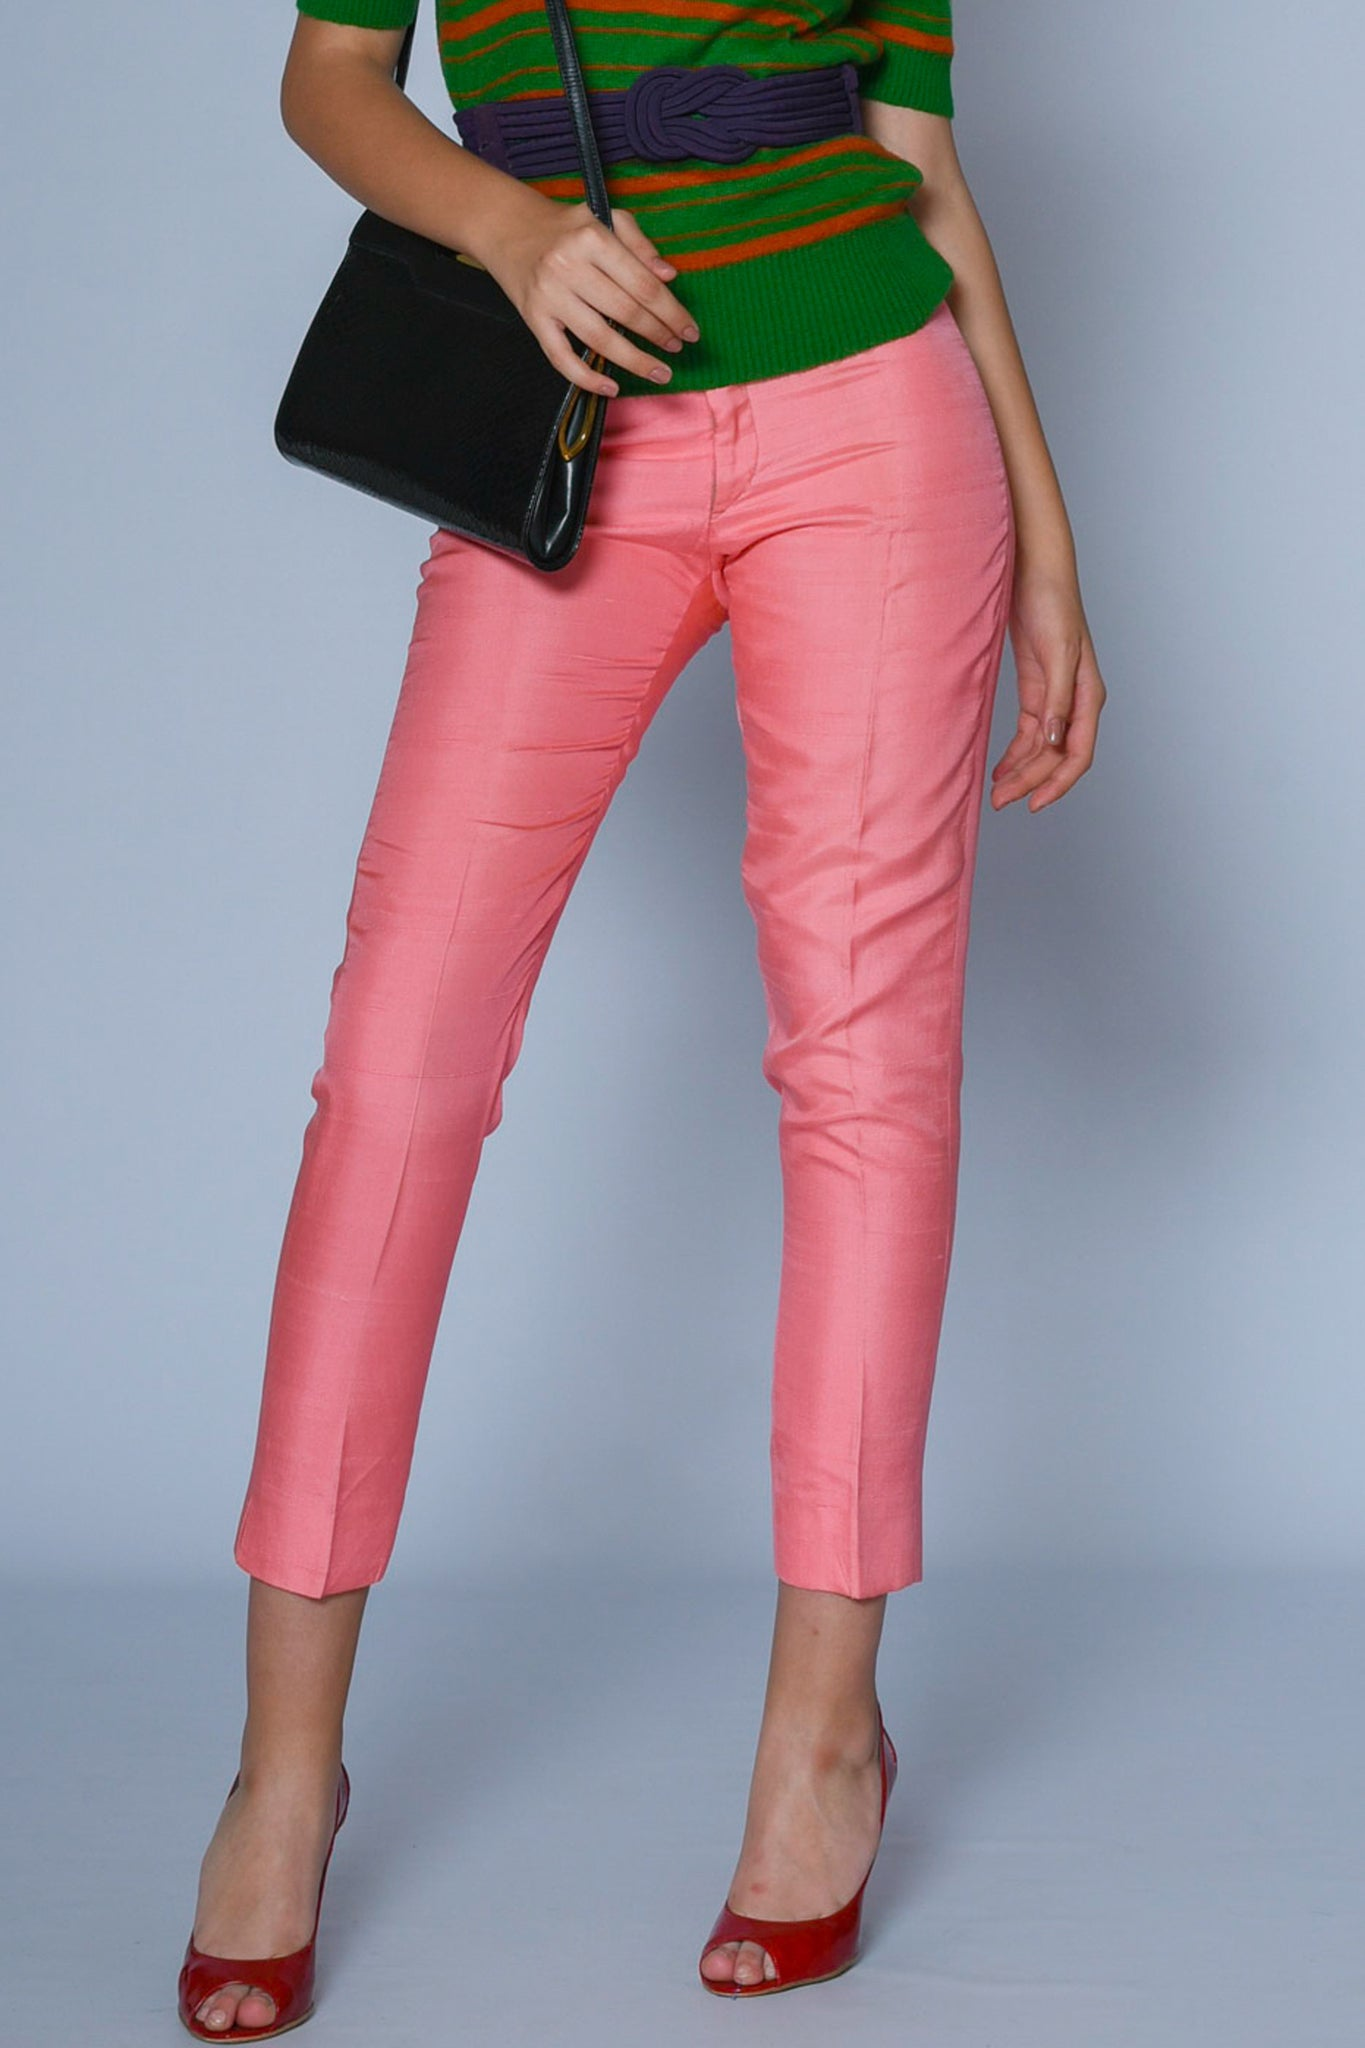 Vintage Oleg Cassini pink silk-satin trousers - SoLovesVintage